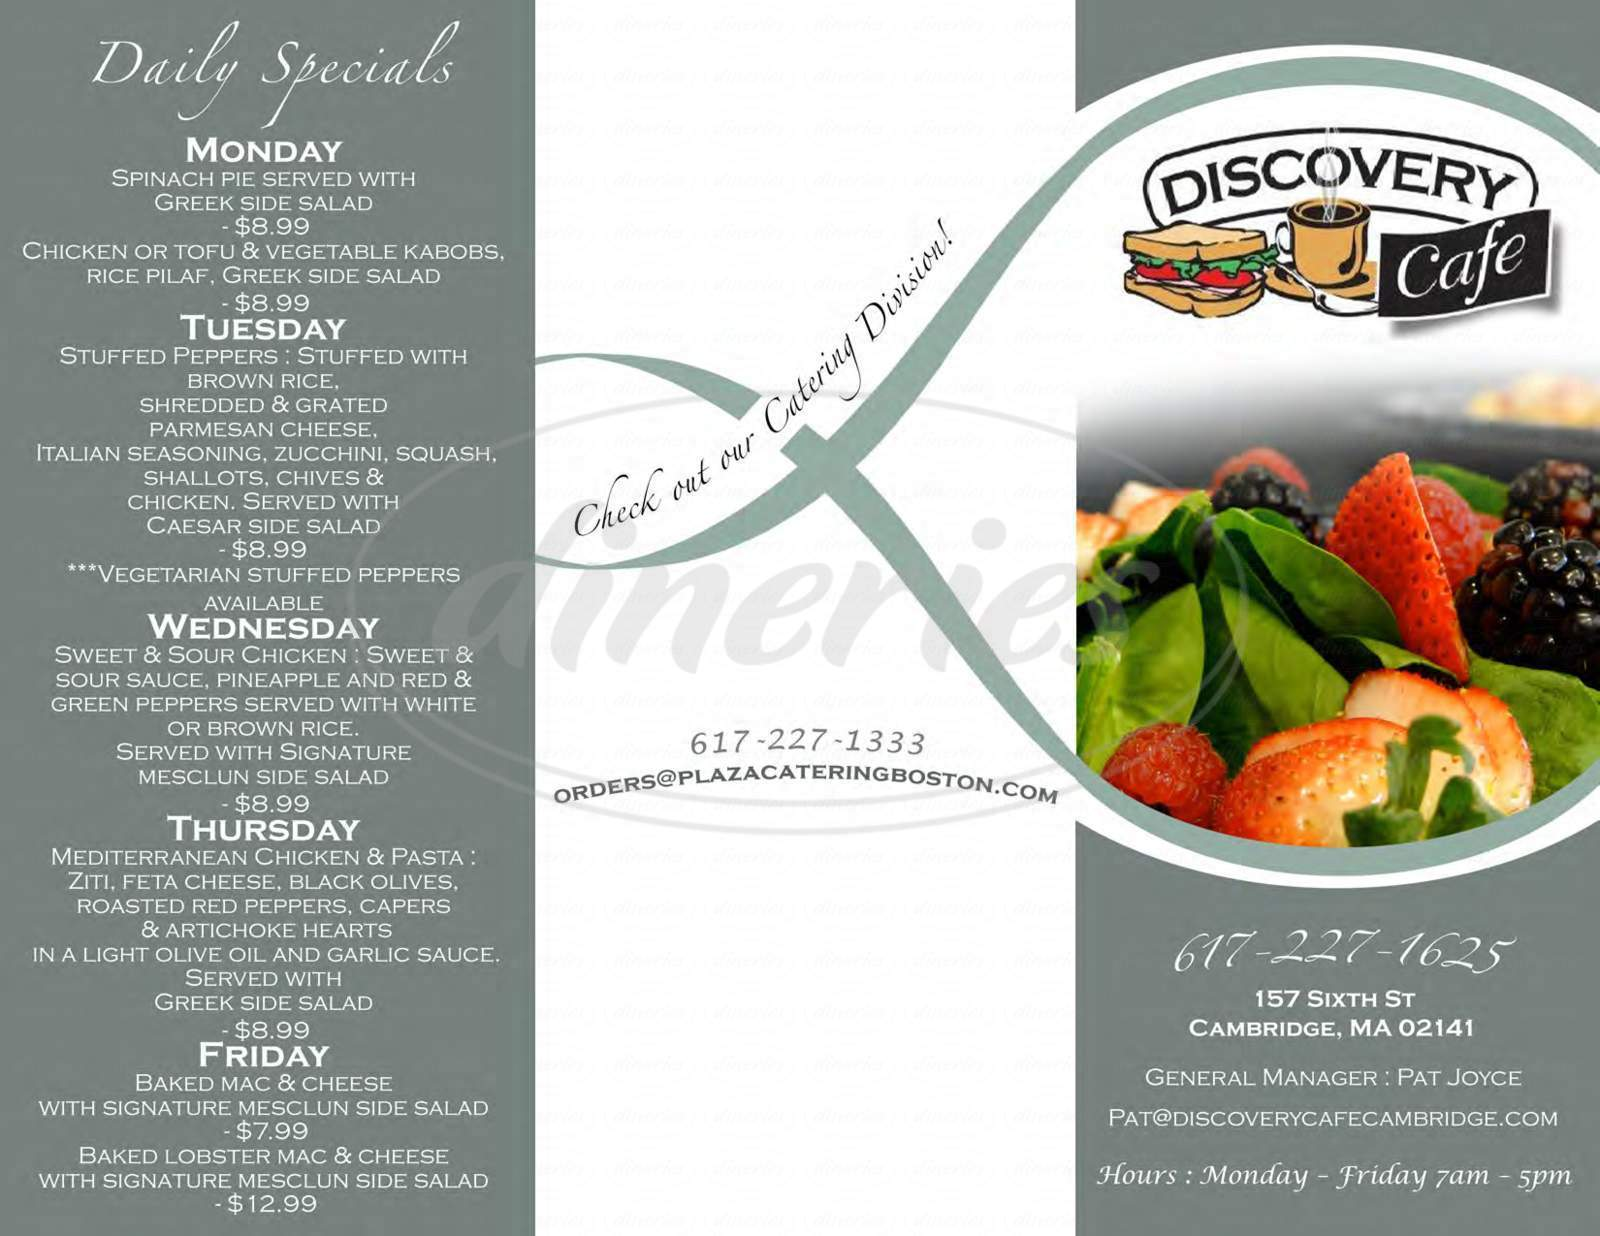 menu for Discovery Cafe